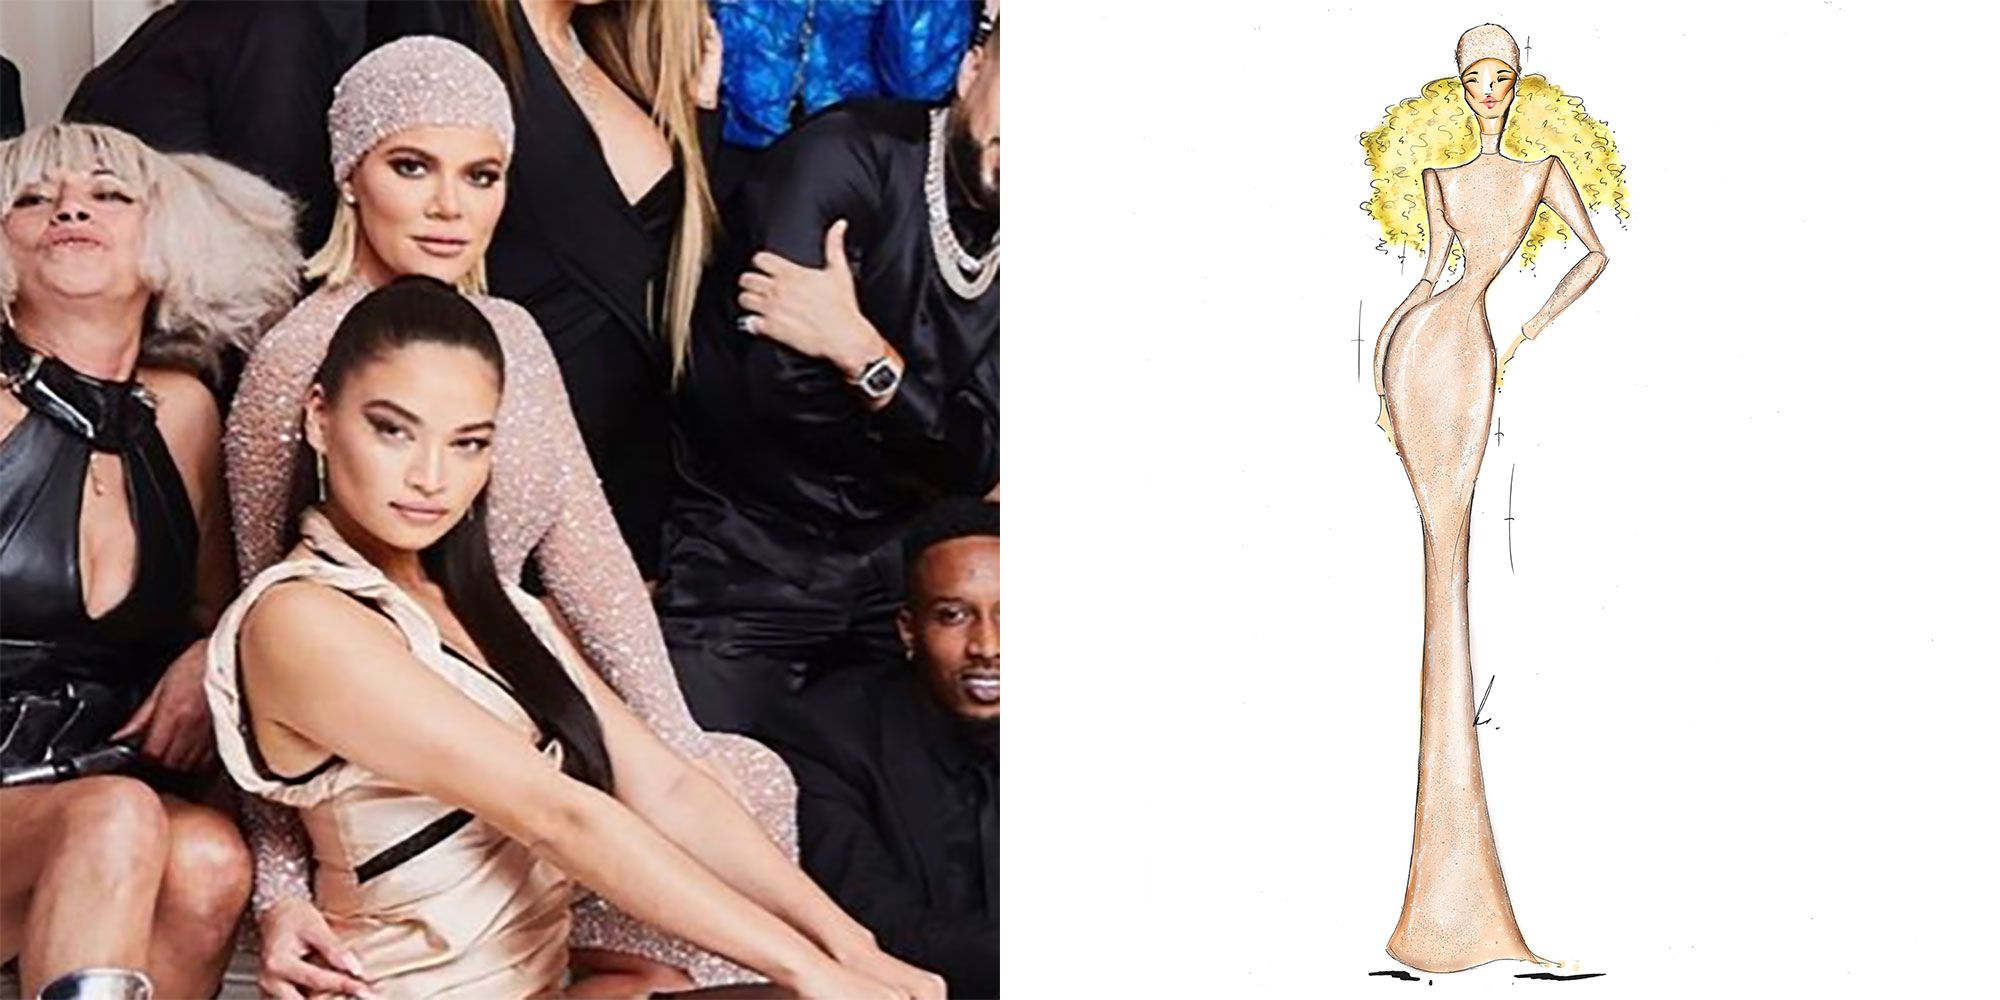 How Khloé Kardashian Helped Create the Crystal-Adorned $6,500 Yousef Al-Jasmi Gown She Wore to Kourtney's 40th Birthday Party